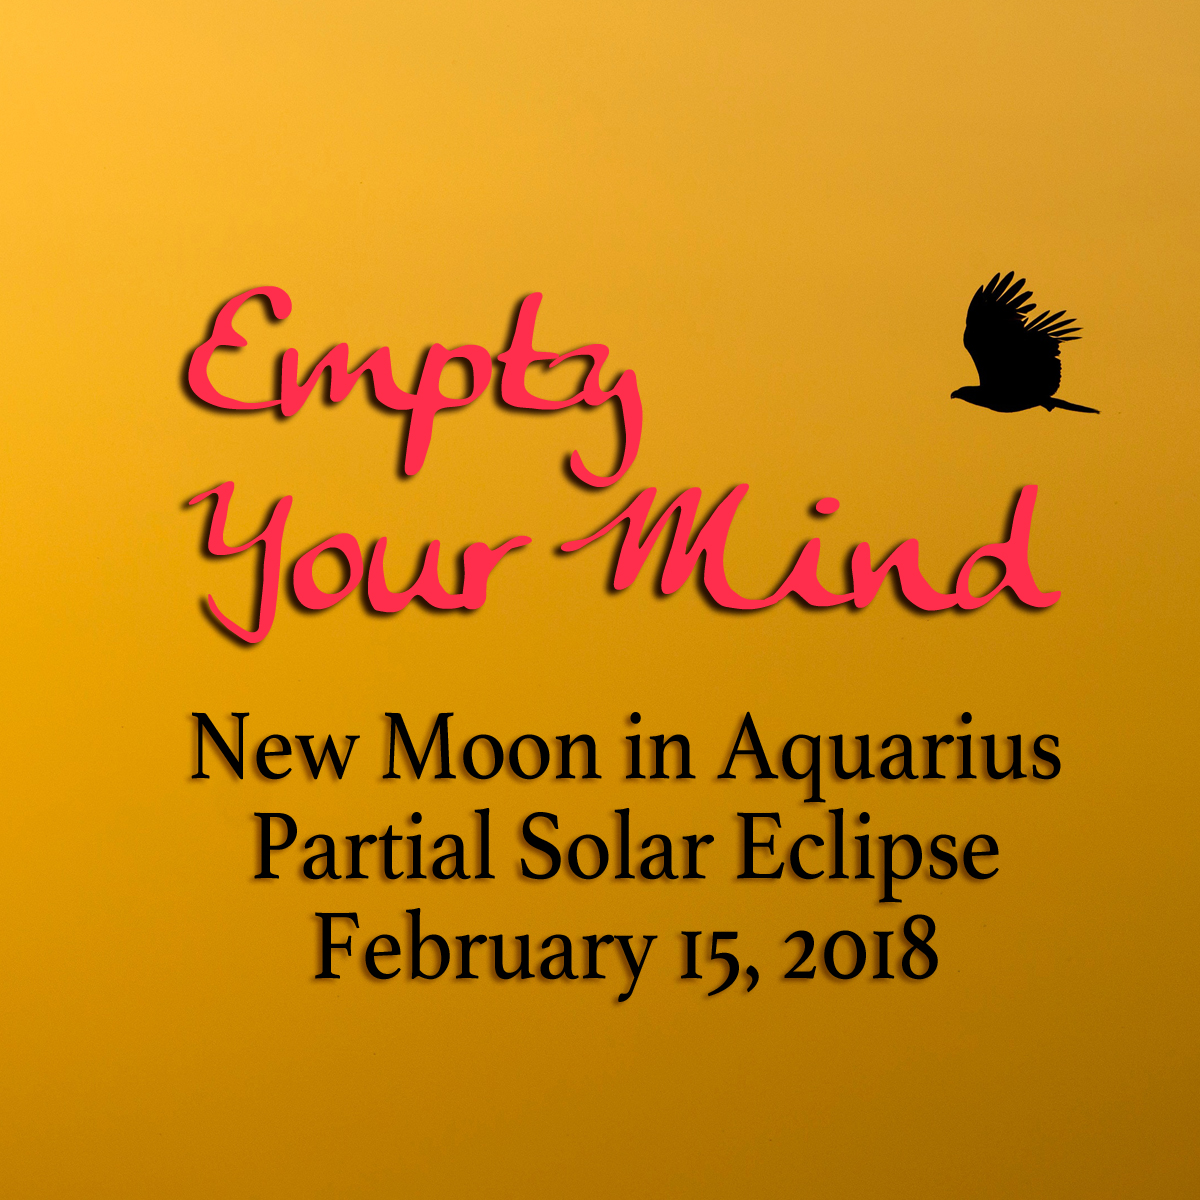 New Moon and Eclipse in Aquarius: Empty Your Mind